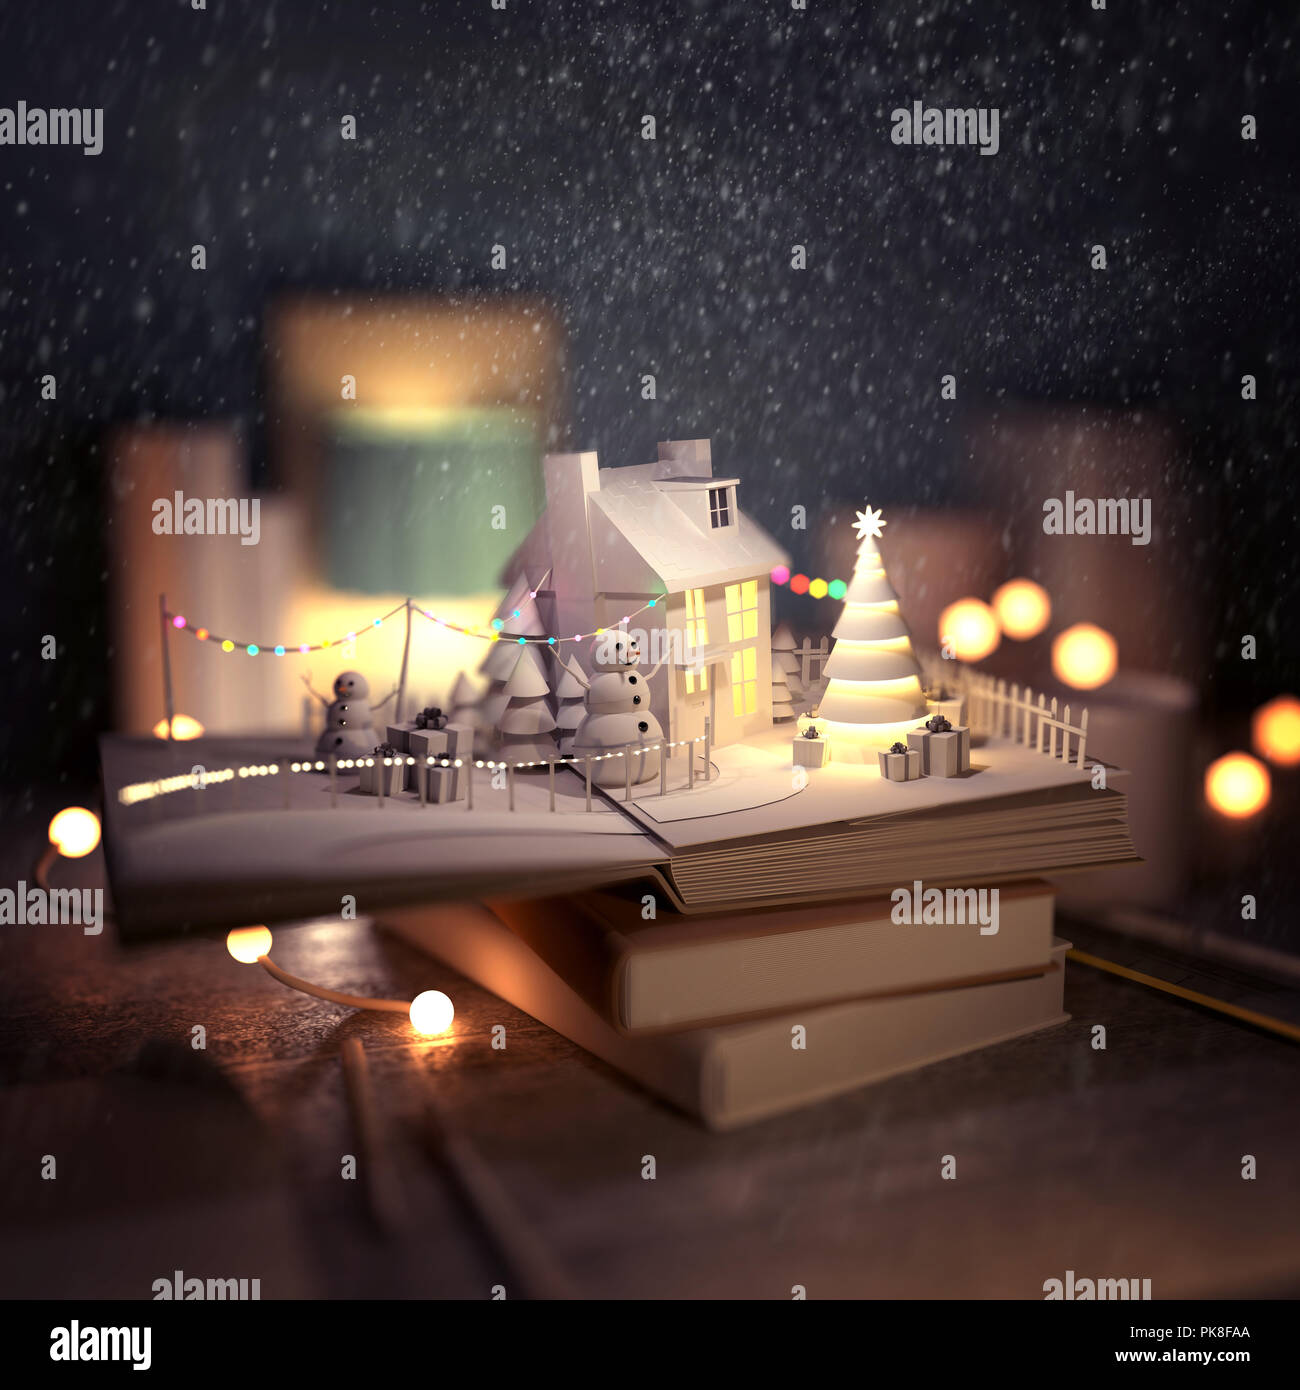 christmas story pop up book opening with a winter scene with a cosy house snowmen christmas trees and decorations 3d illustration